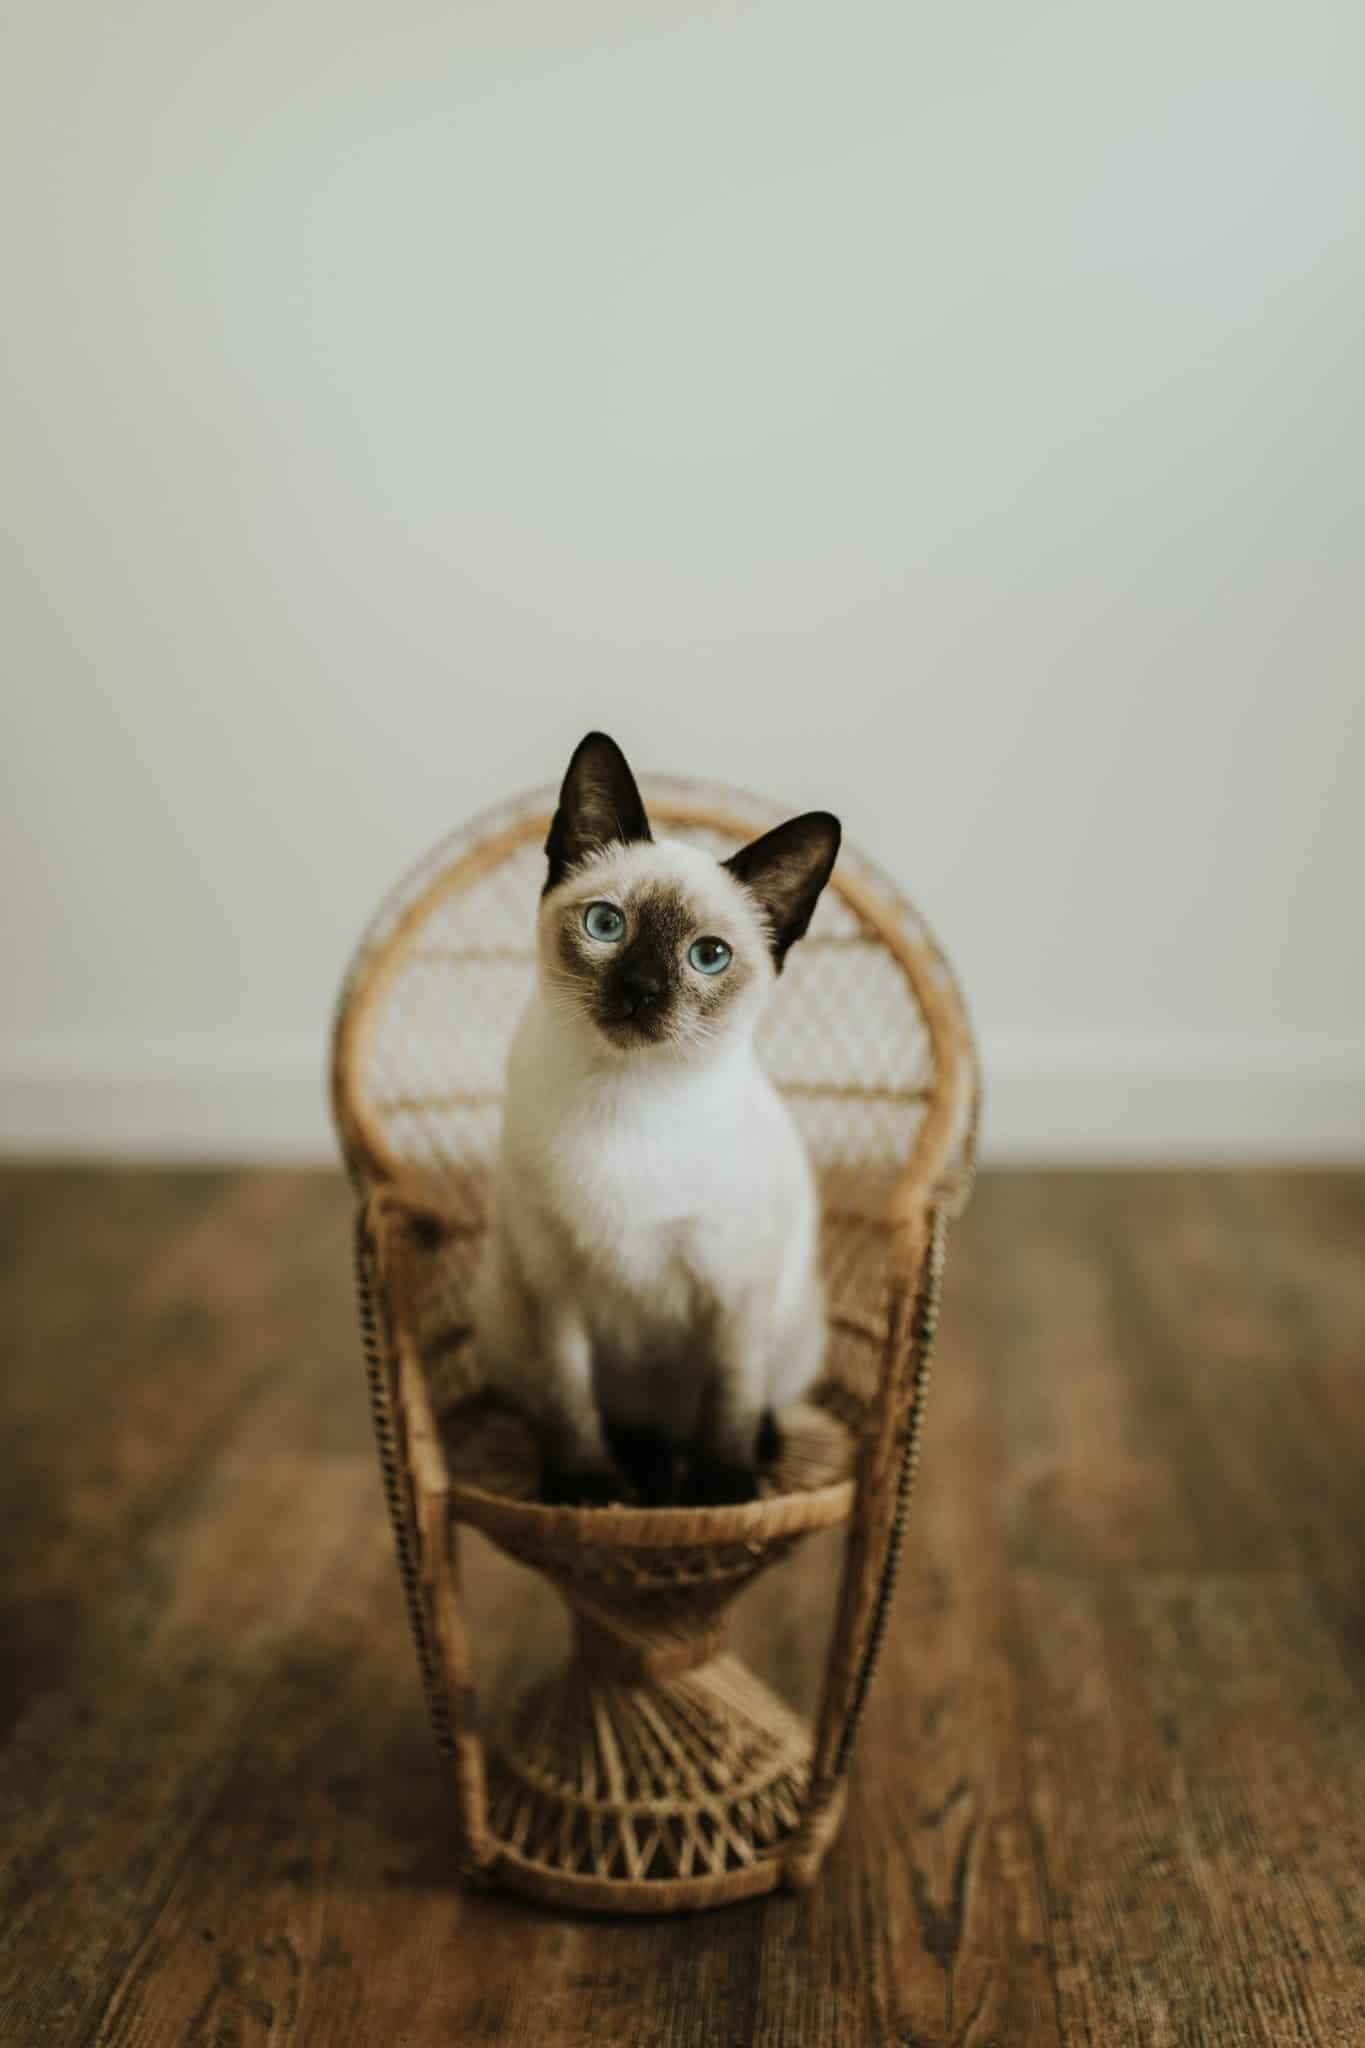 cats are beautiful animals, this one is sitting on a small chair